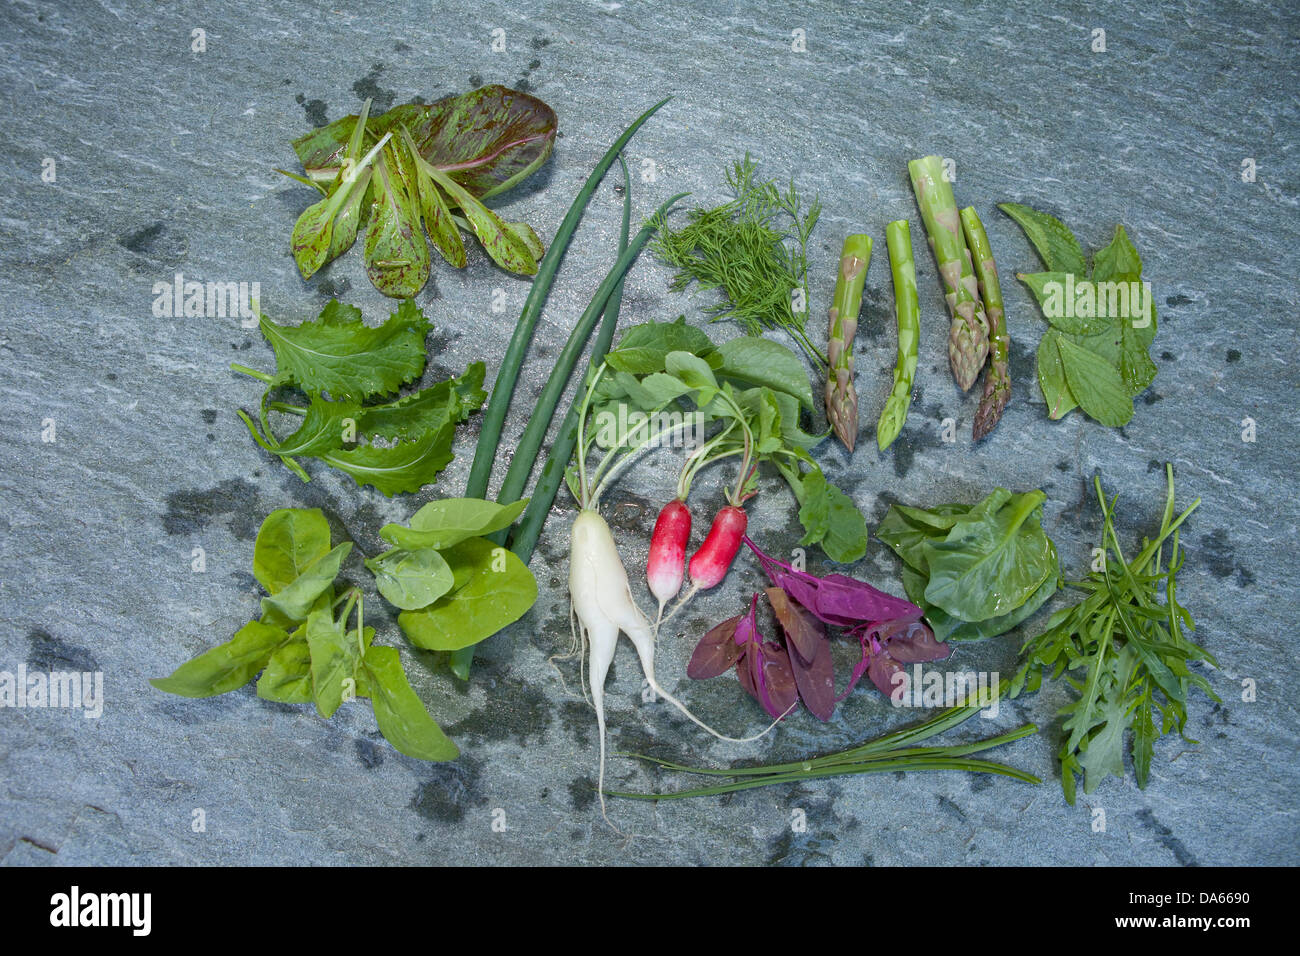 Vegetables, salads, lettuces, Hospezi, Trun, agriculture, canton, GR, Graubünden, Grisons, Switzerland, Europe, - Stock Image